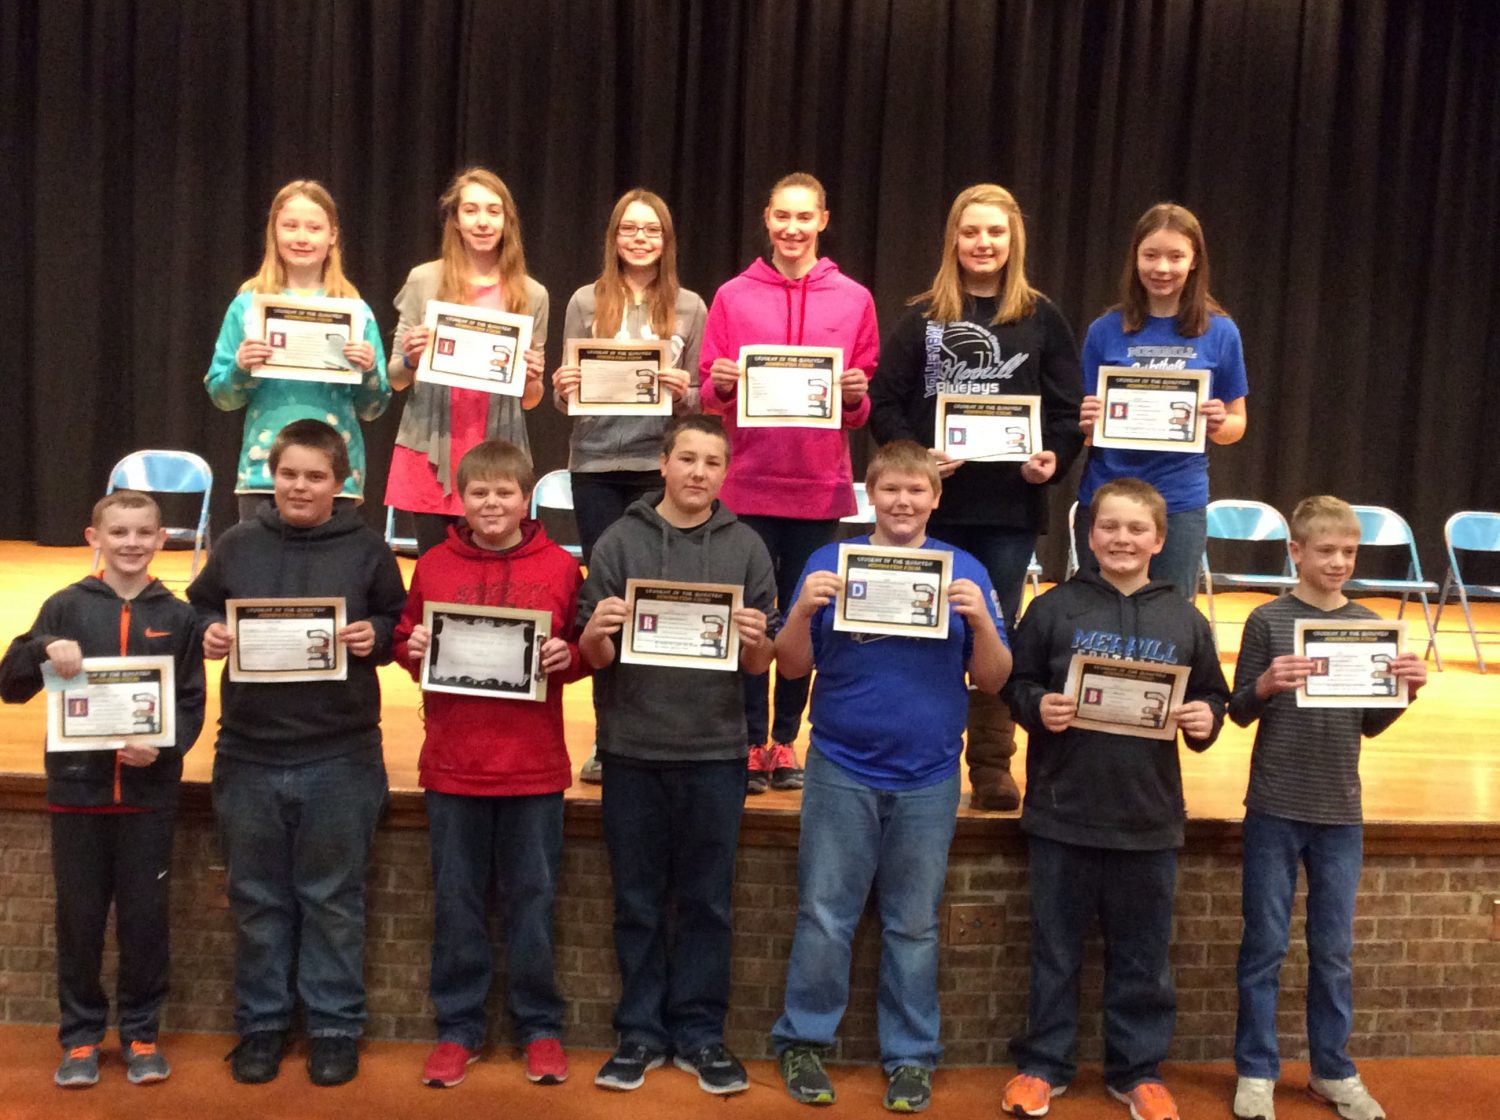 Grade 7 Students of the Quarter are, front from left, Parker Short, Anthony Slater, Bryce Thomaschefsky, Casey Cardinal, Zach Kriegel, Devin Miller, and Thad Countryman; second row, Alexis Crossman, Jordyn Henrich, Michaela Kienbaum, Kim Kracht, Taylor Dinges and Kendall Krueger.